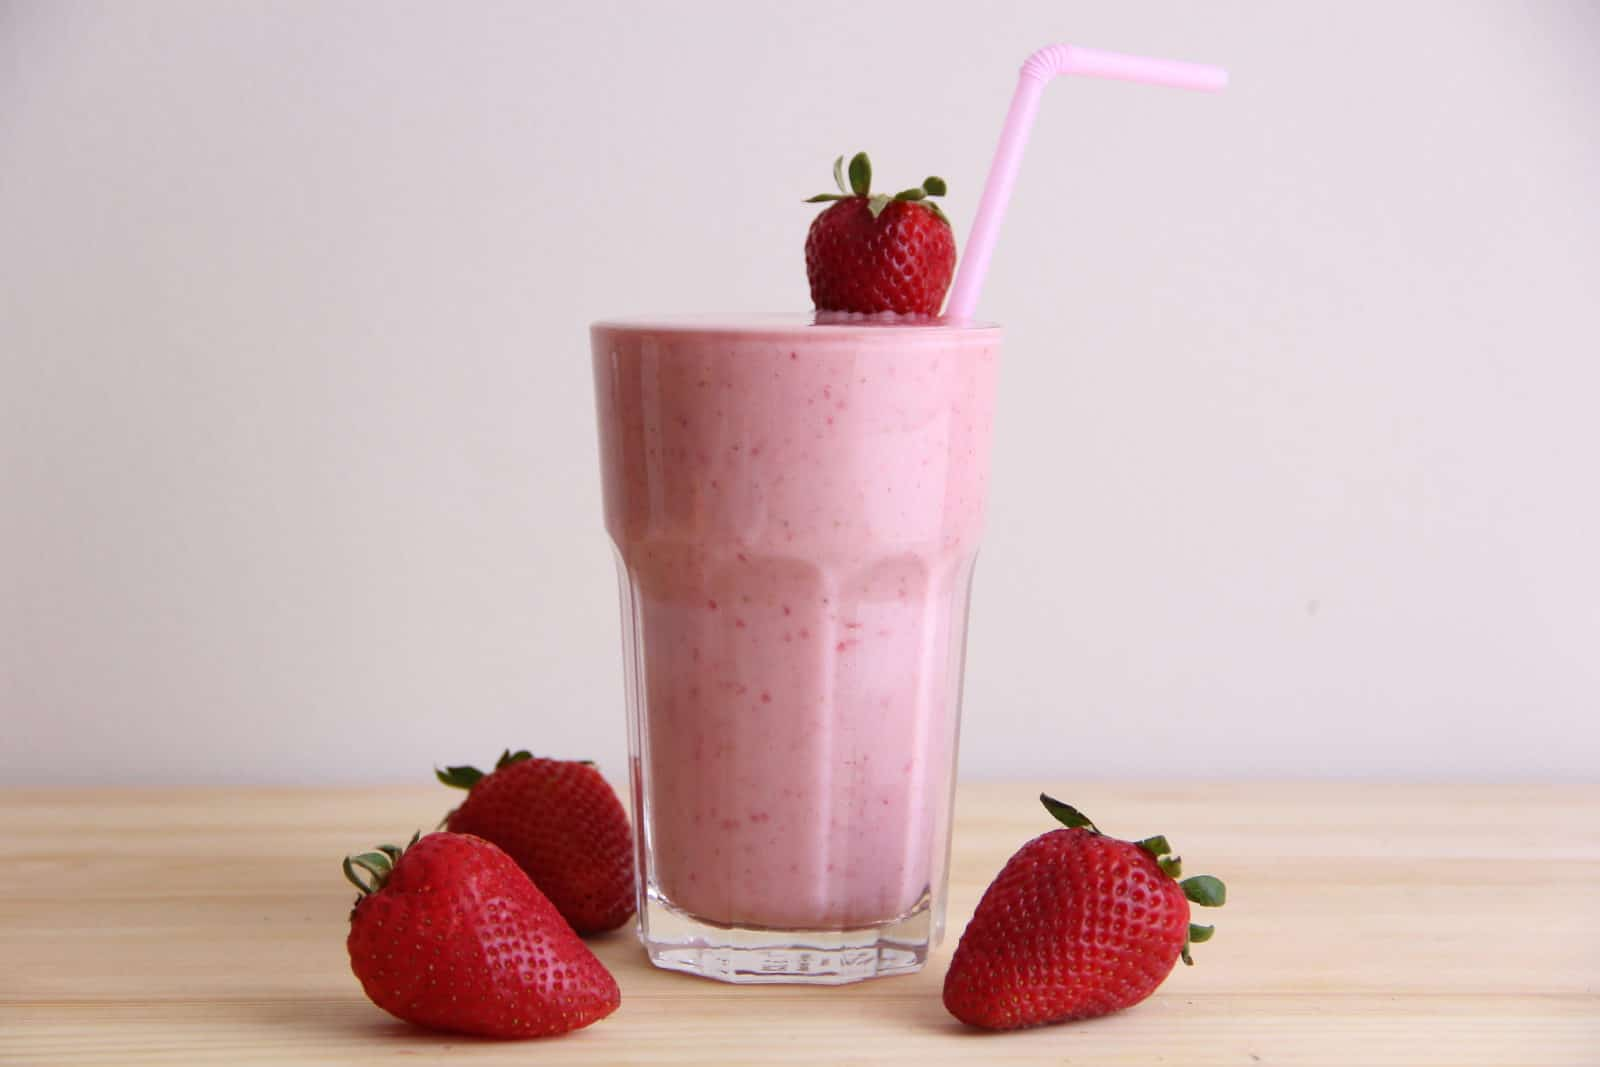 strawberry banana smoothie in a glass with whole strawberries   goodMix Superfoods